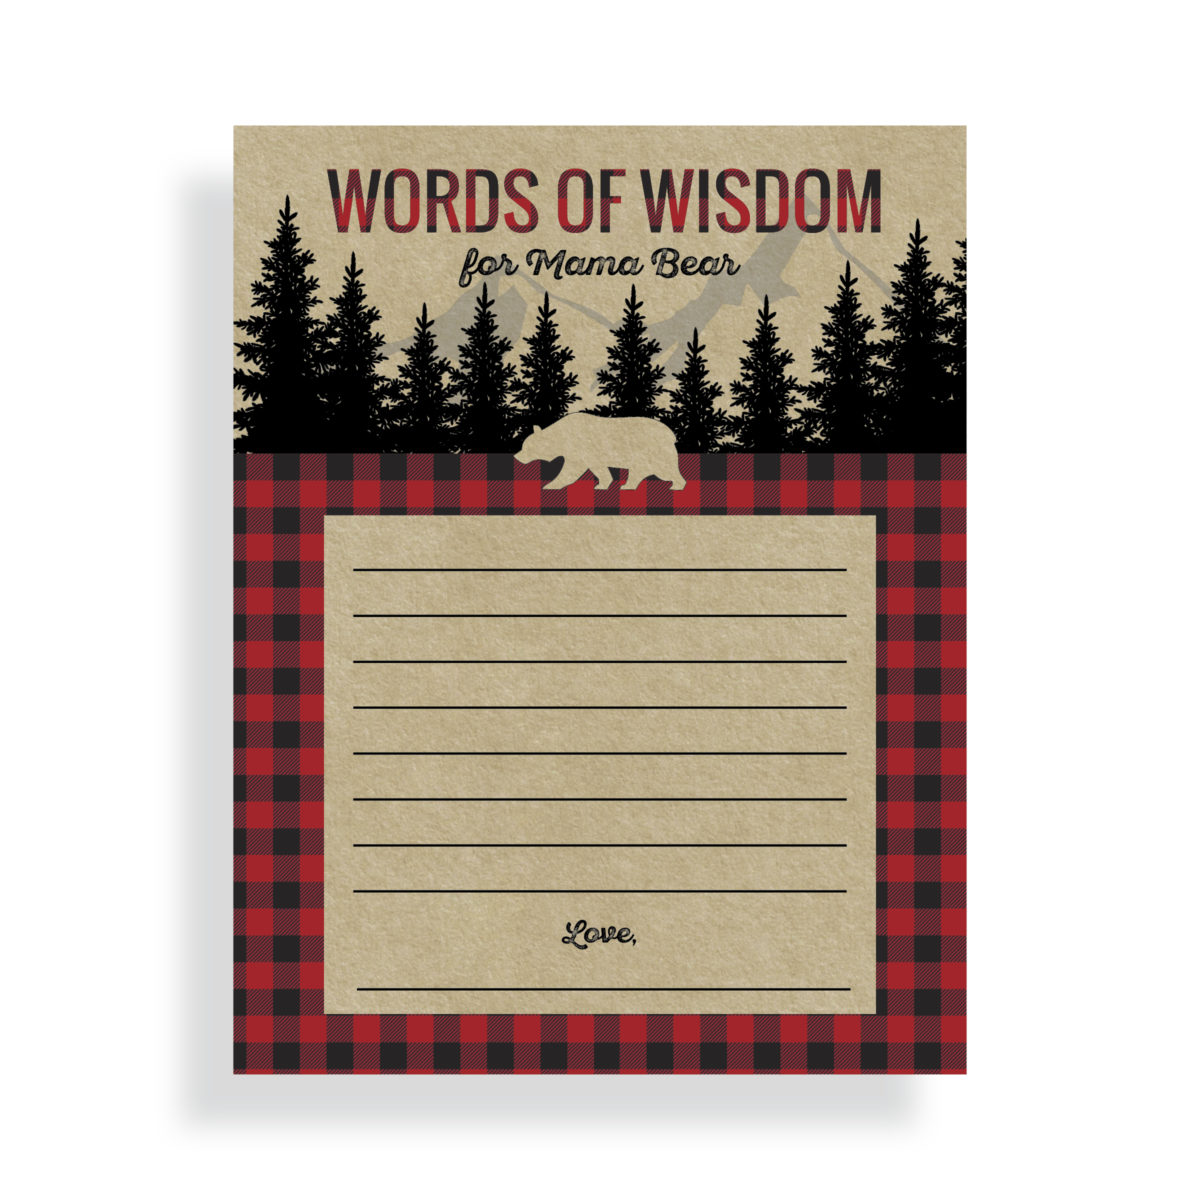 Lumberjack Words of Wisdom Cards | by Posted Fete